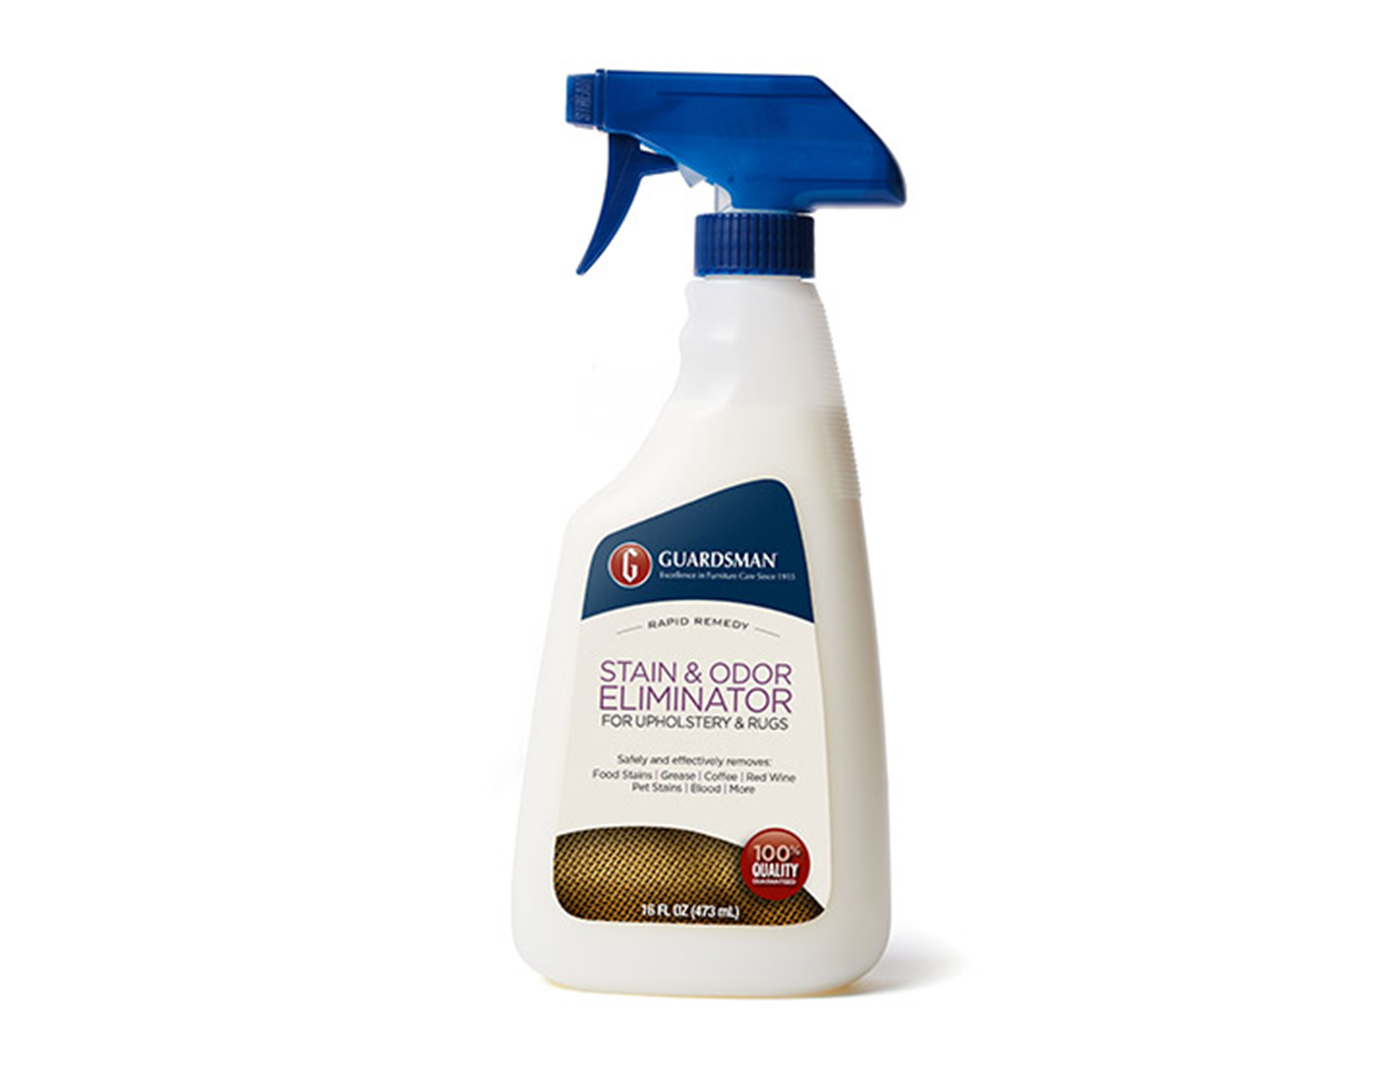 Stain & Odor Eliminator for Fabric